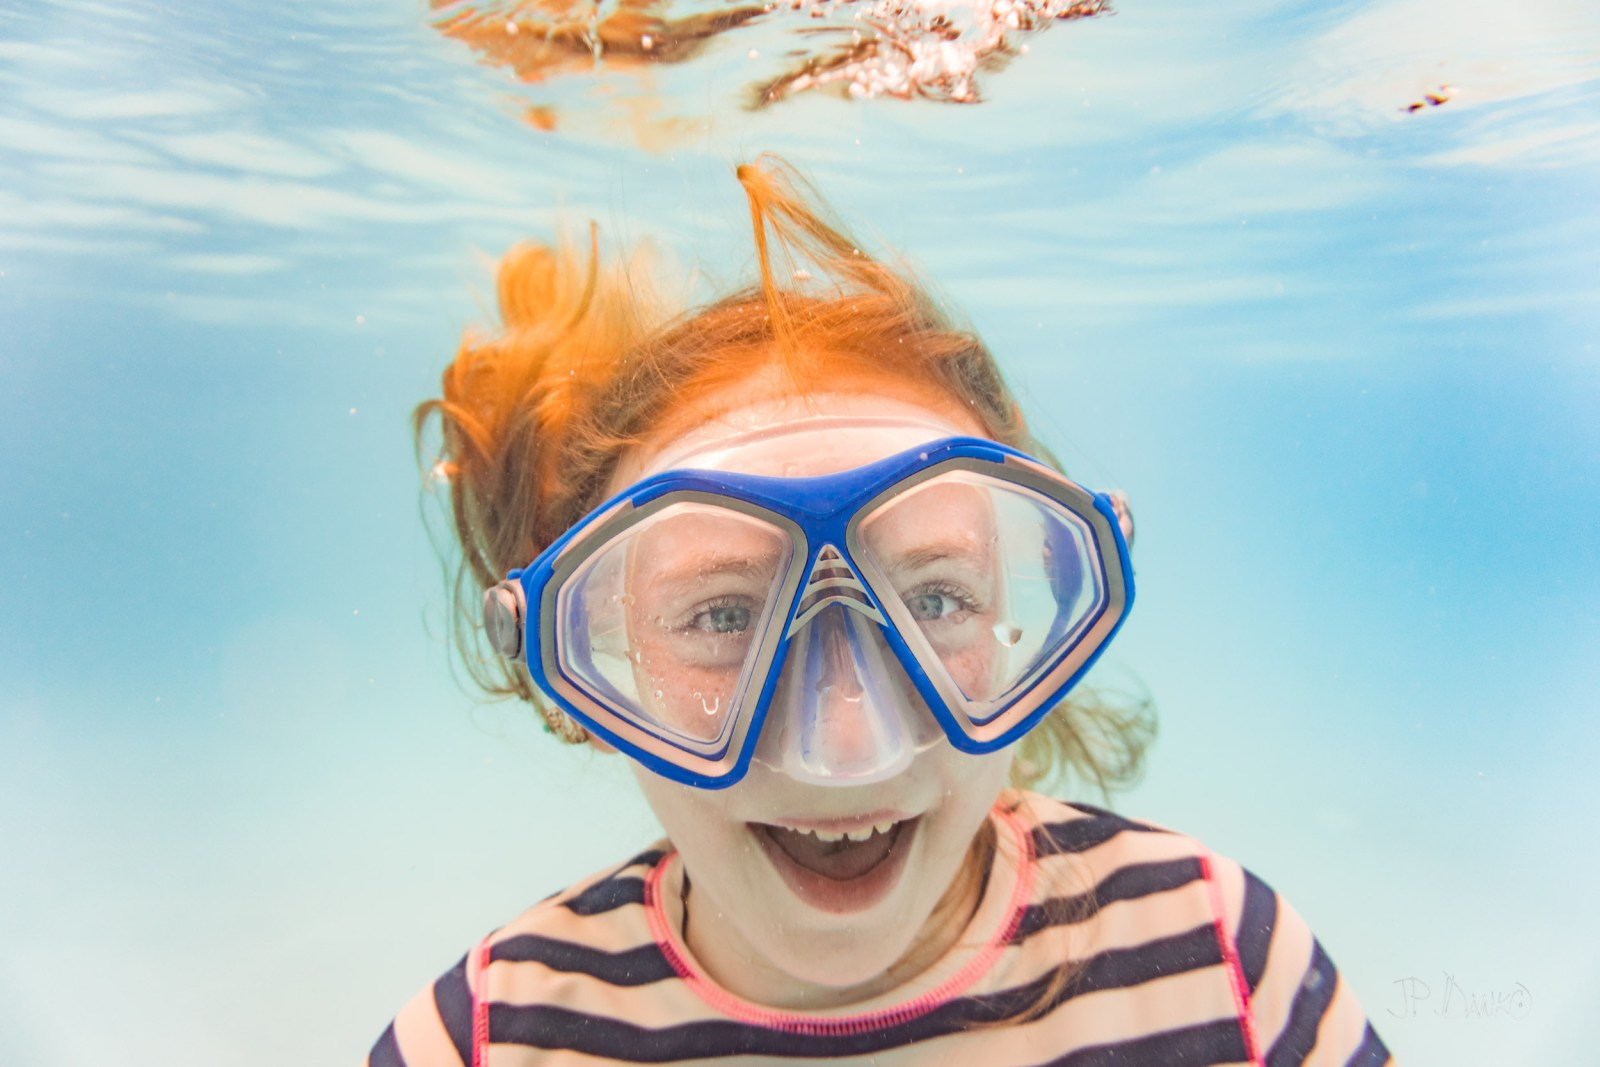 Underwater view of girl on holiday swimming in pool laughing in goggles